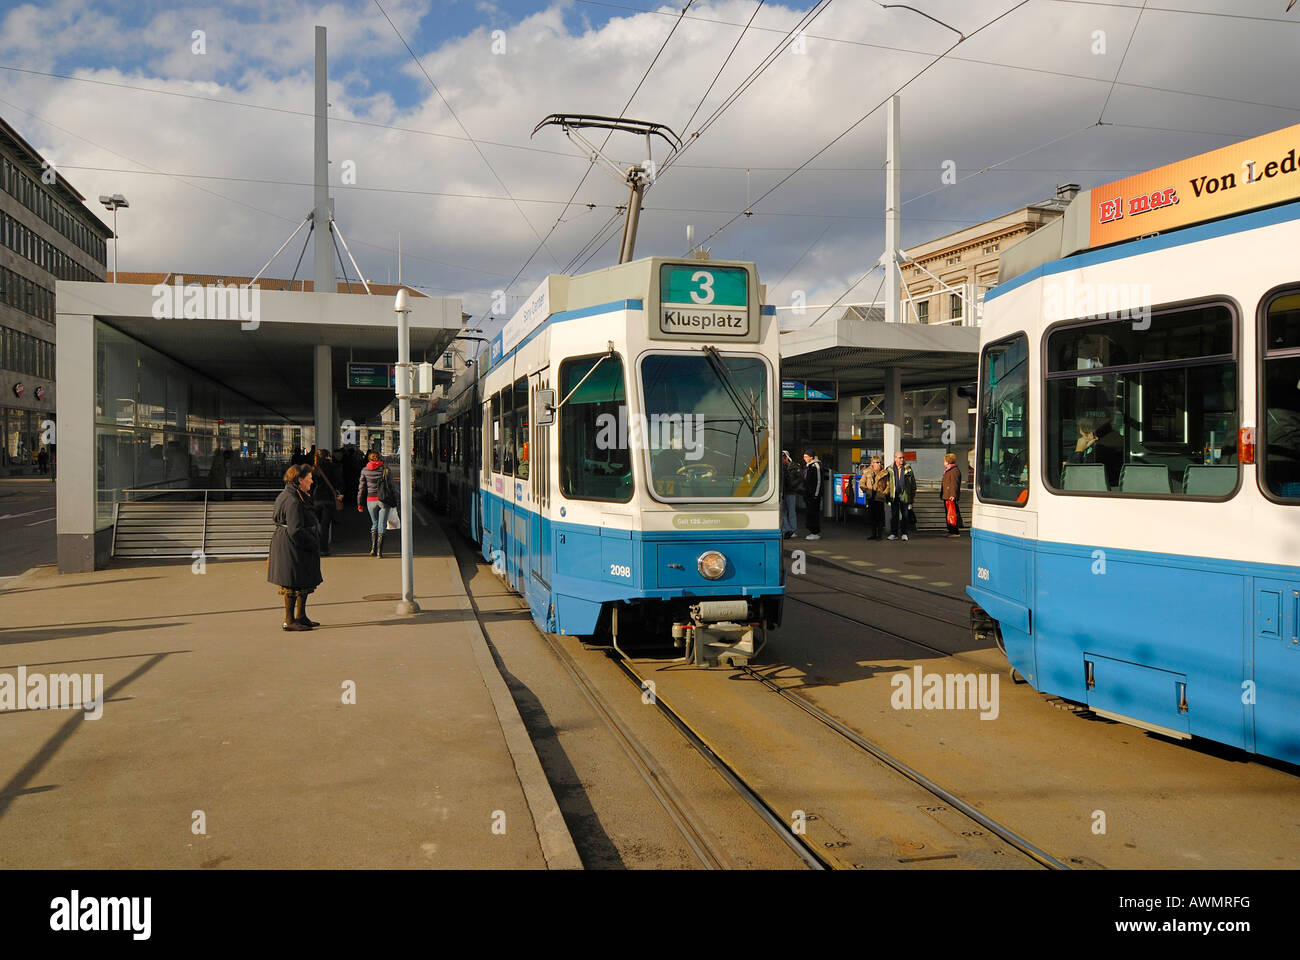 Zuerich - tram stop near central station - Switzerland, Europe. Stock Photo